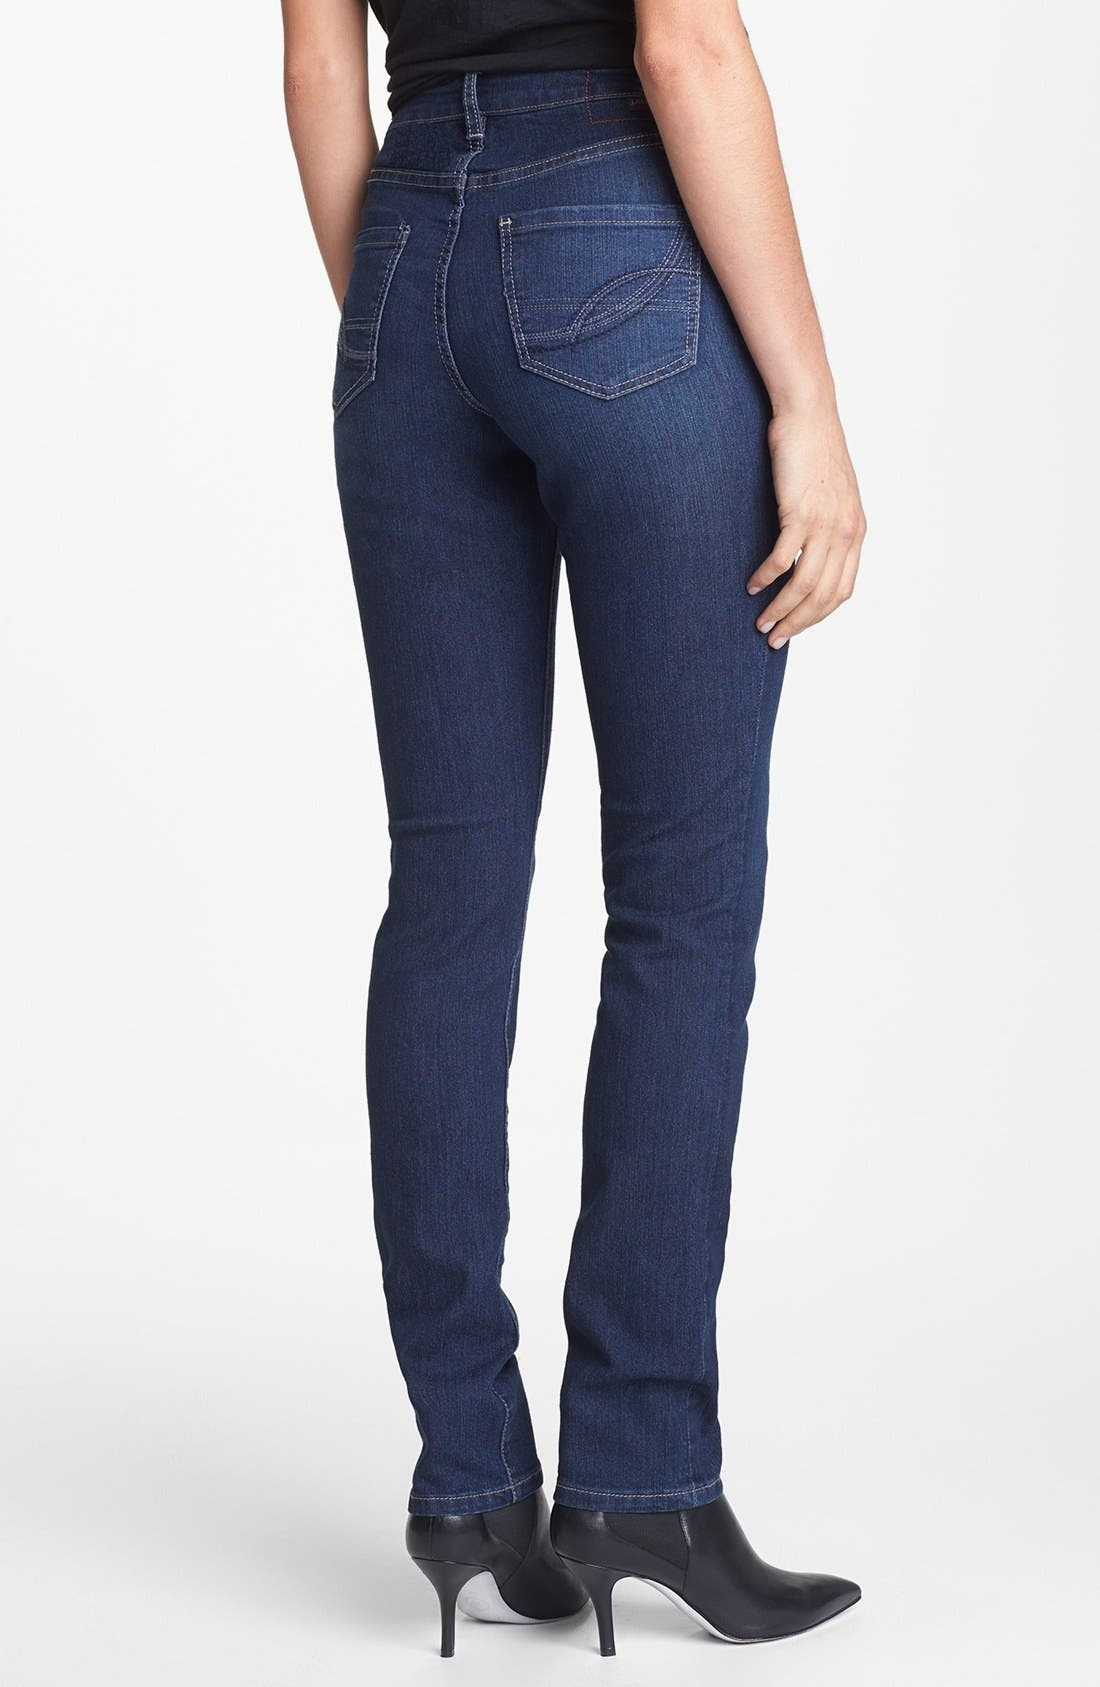 Alternate Image 2  - Jag Jeans 'Holly' Slim Fit Jeans (Blue Shadow)